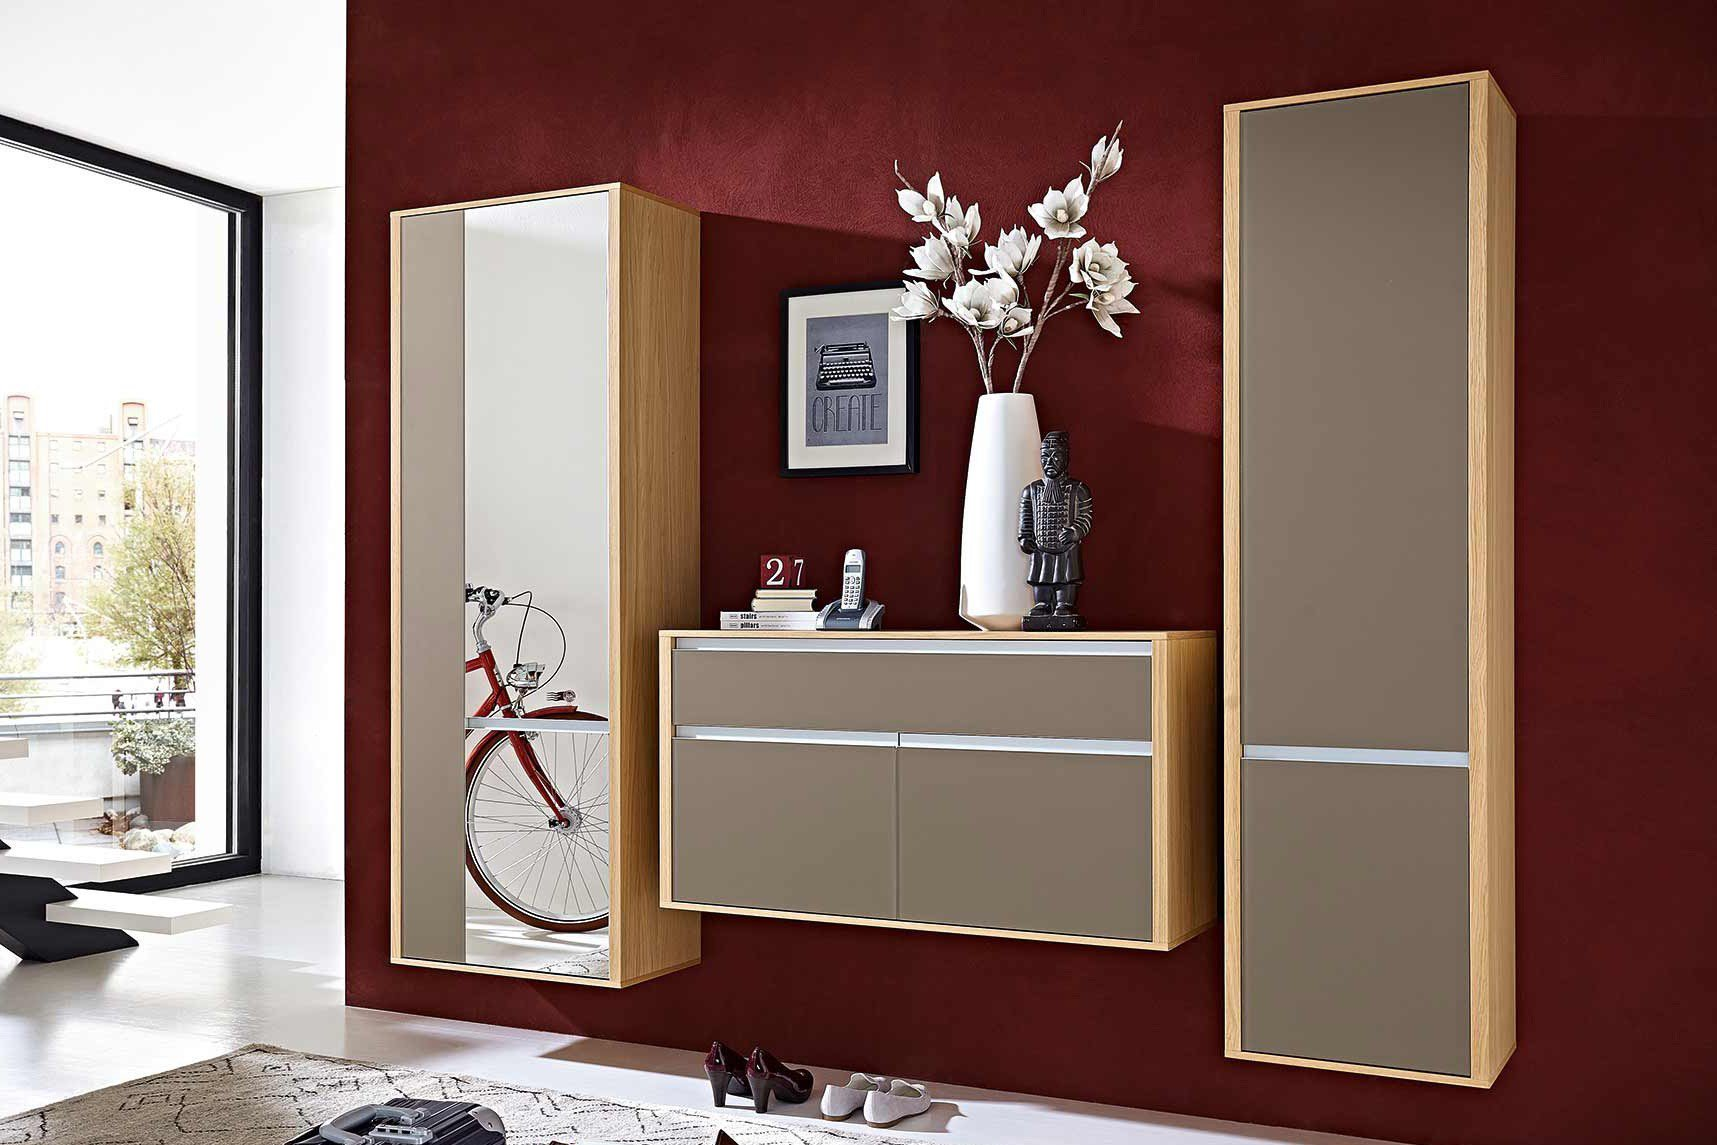 garderobe bari in eiche braun von leinkenjost m bel letz. Black Bedroom Furniture Sets. Home Design Ideas